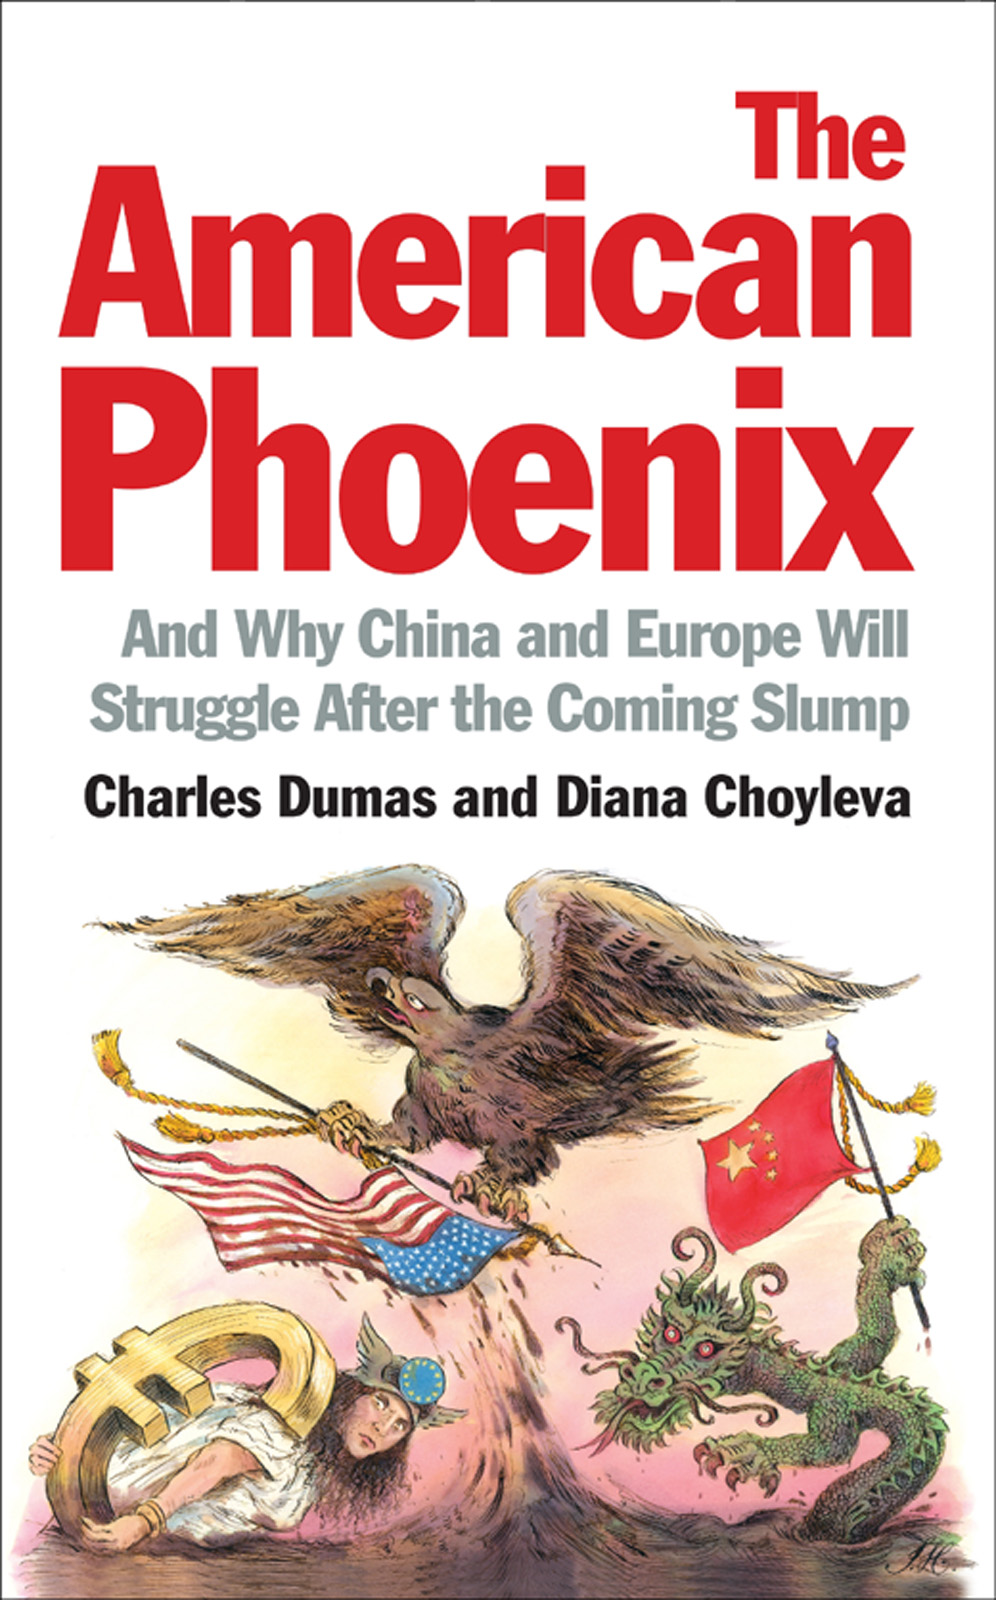 The American Phoenix And why China and Europe will struggle after the coming slump